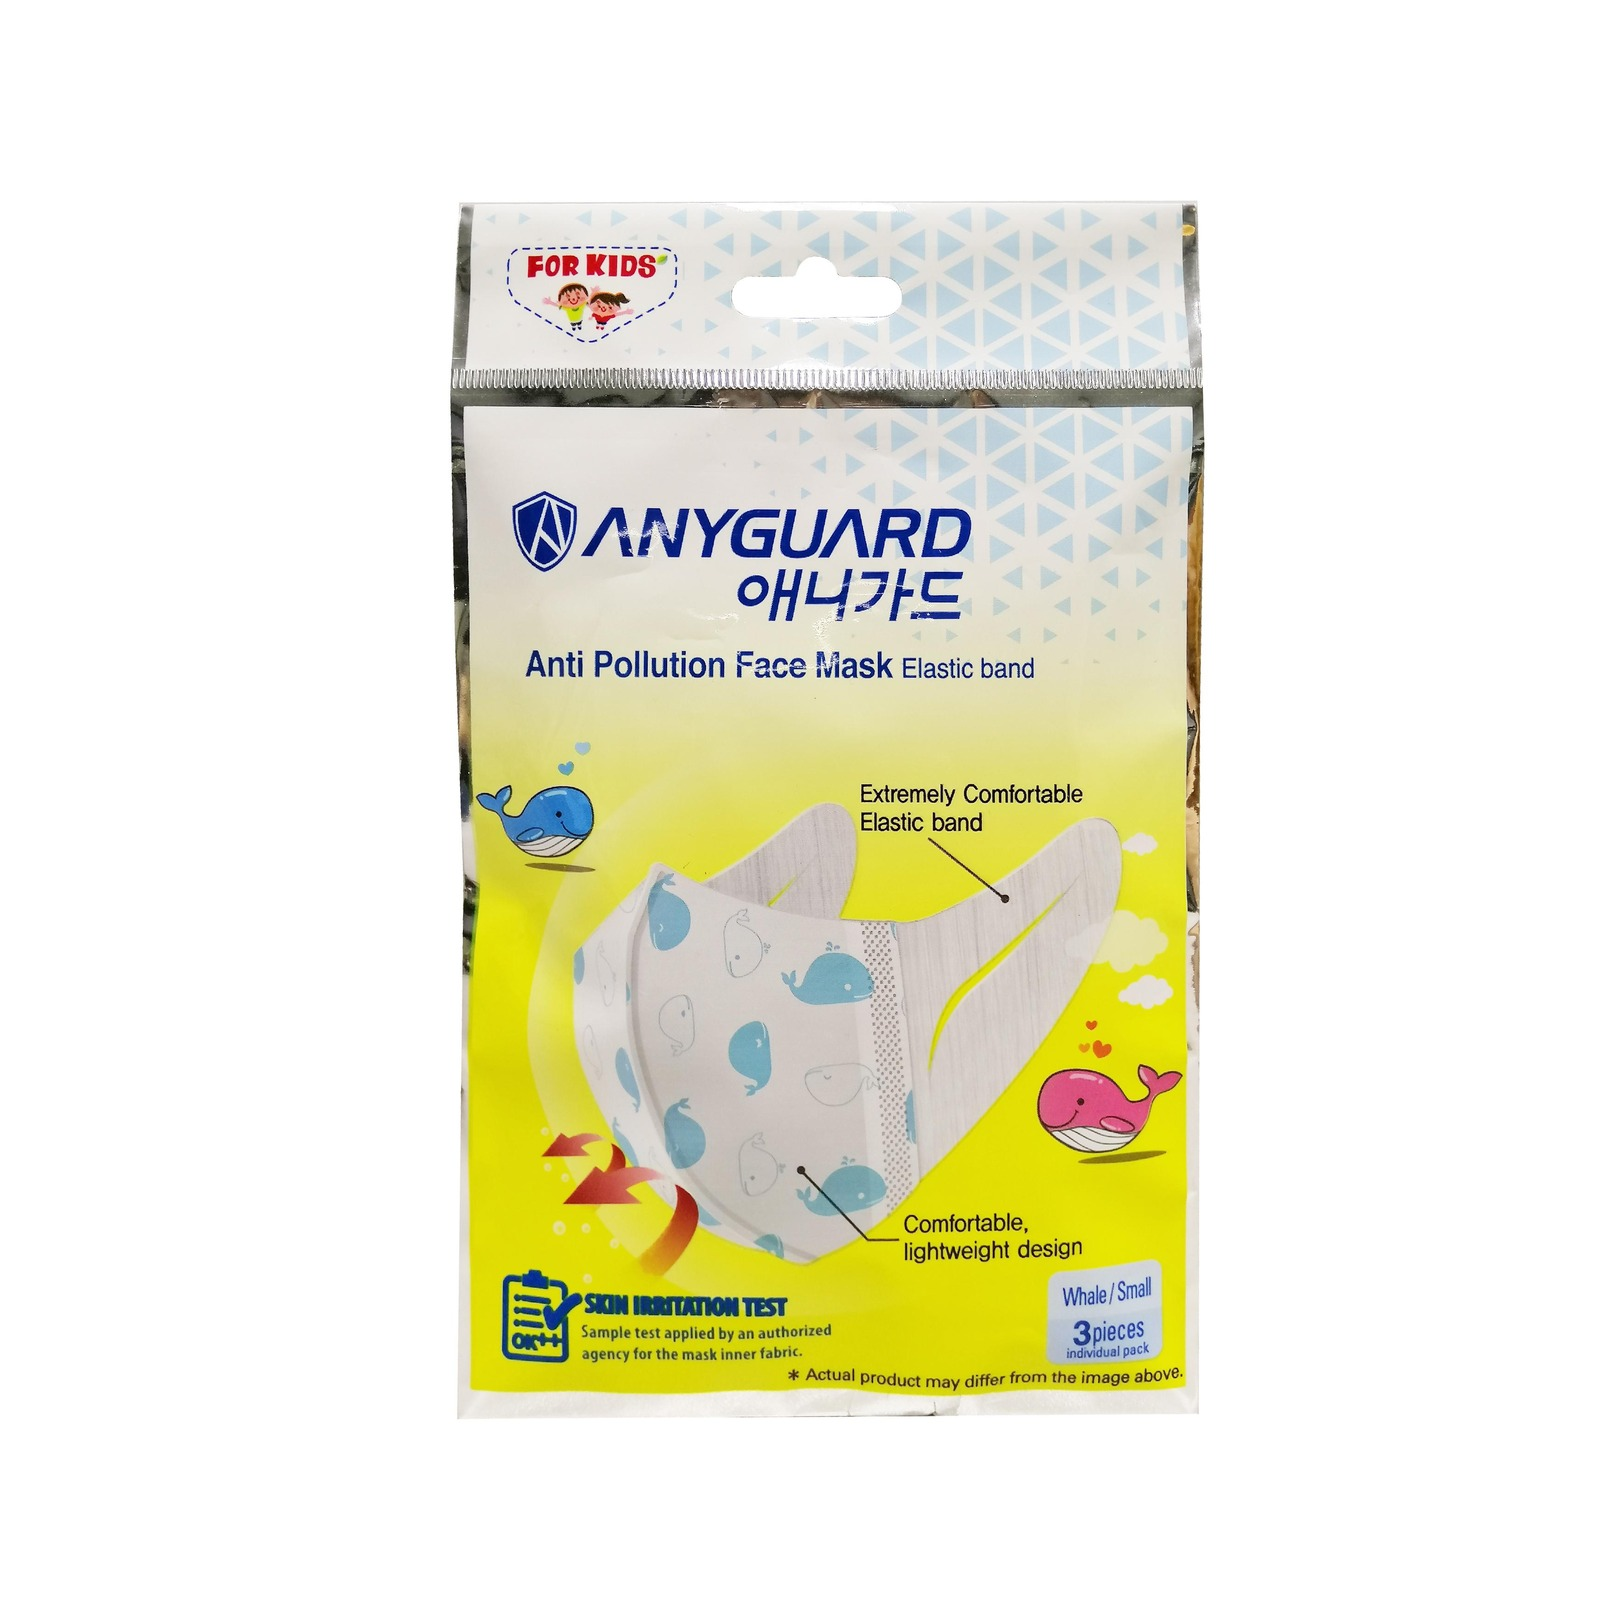 Anyguard 2D Elastic Band Face Mask Small for Kids (White)